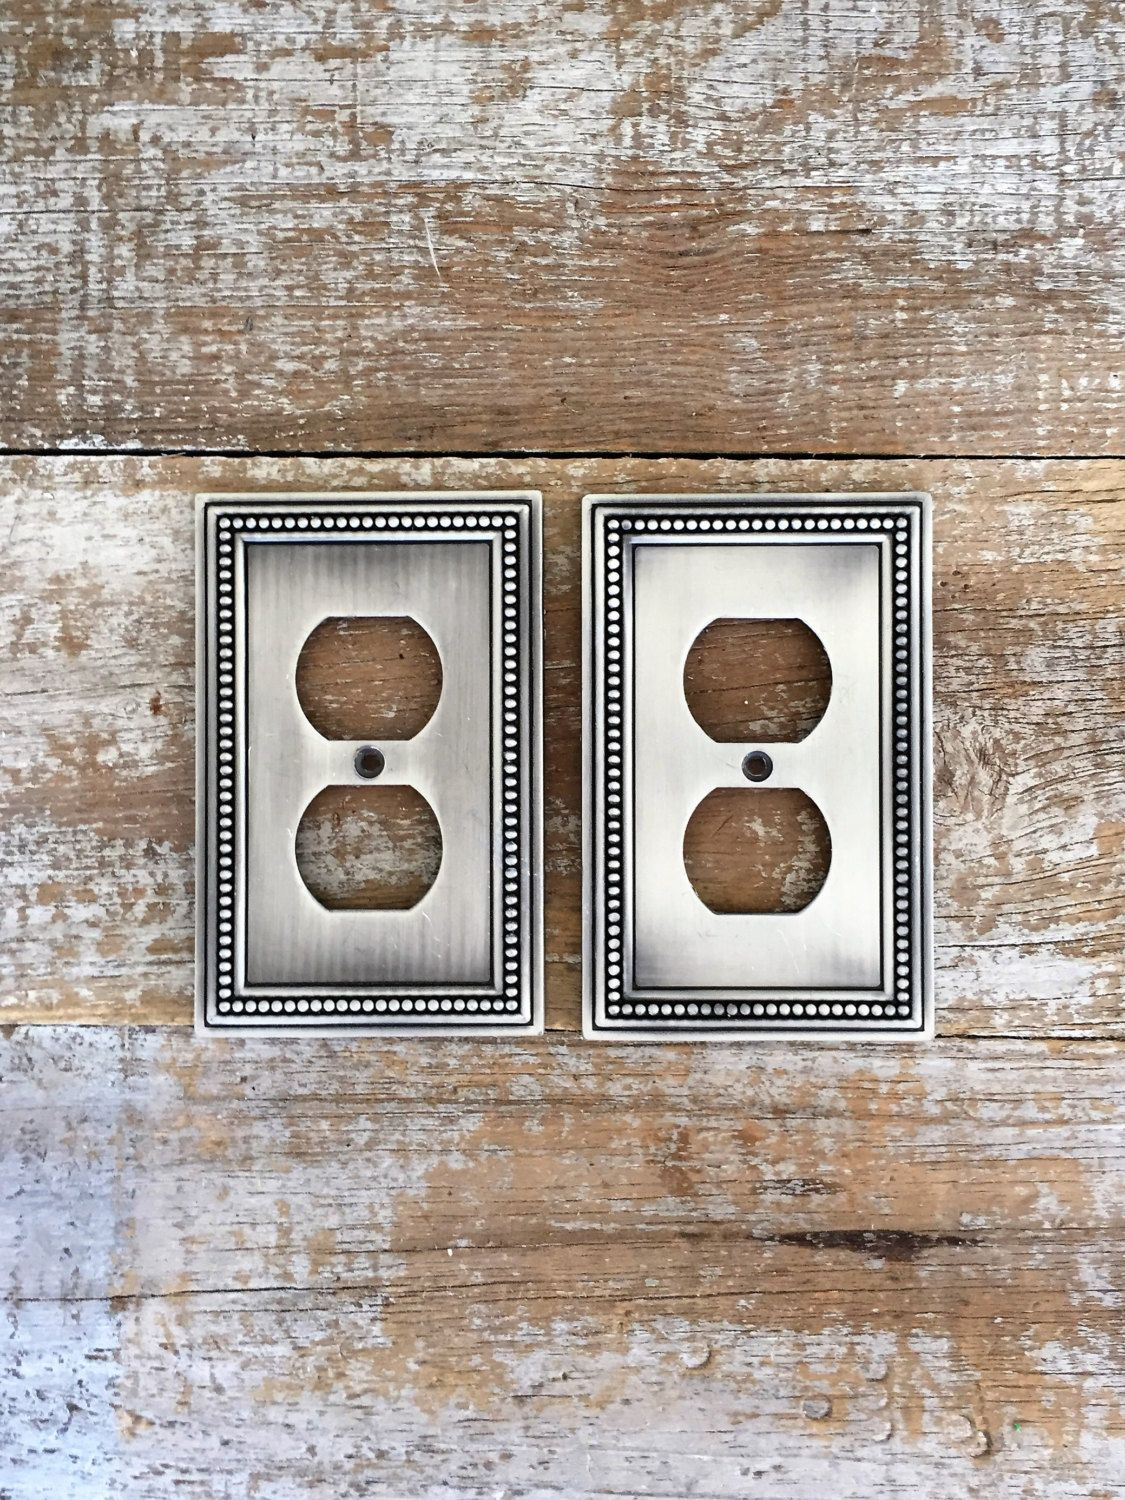 Stainless Steel Outlet Covers Outlet Covers 2 Silver Outlet Covers Stainless Steel Outlet Plate